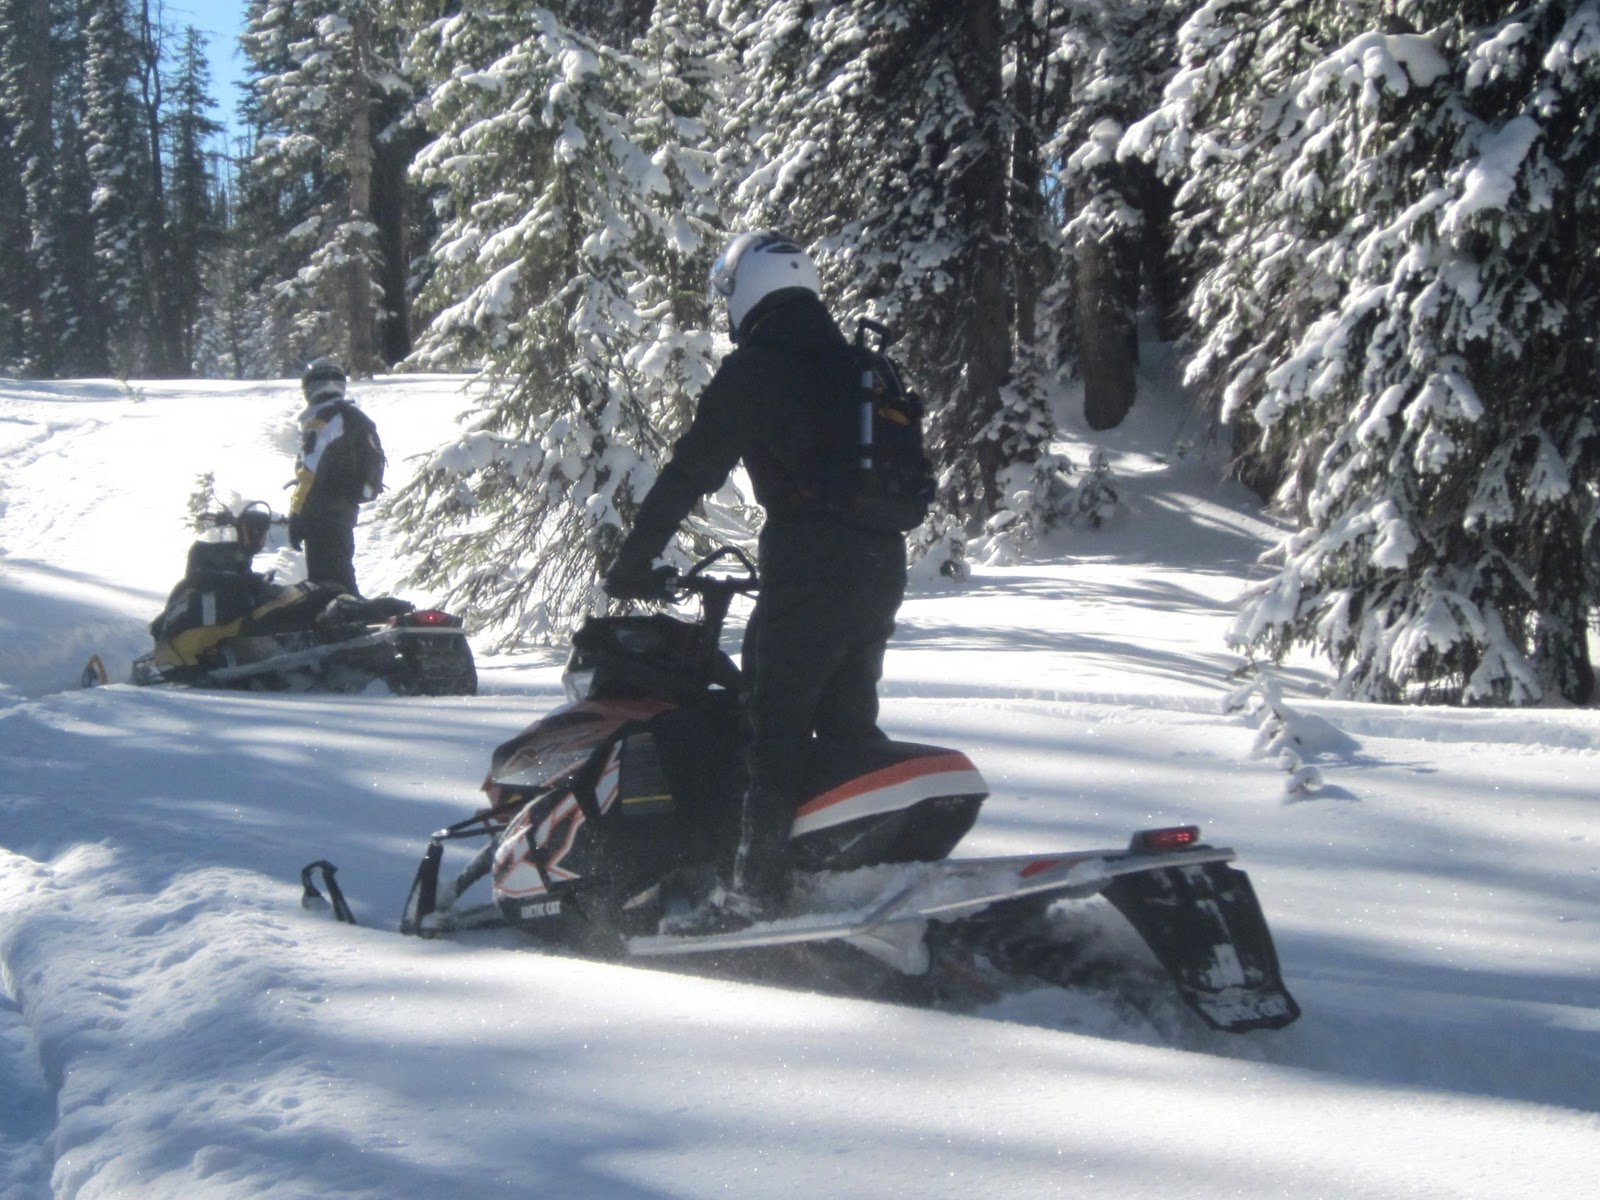 ... SNOWMOBILE ADVENTURES: Day 3 of Colorado Snowmobile Trip / December